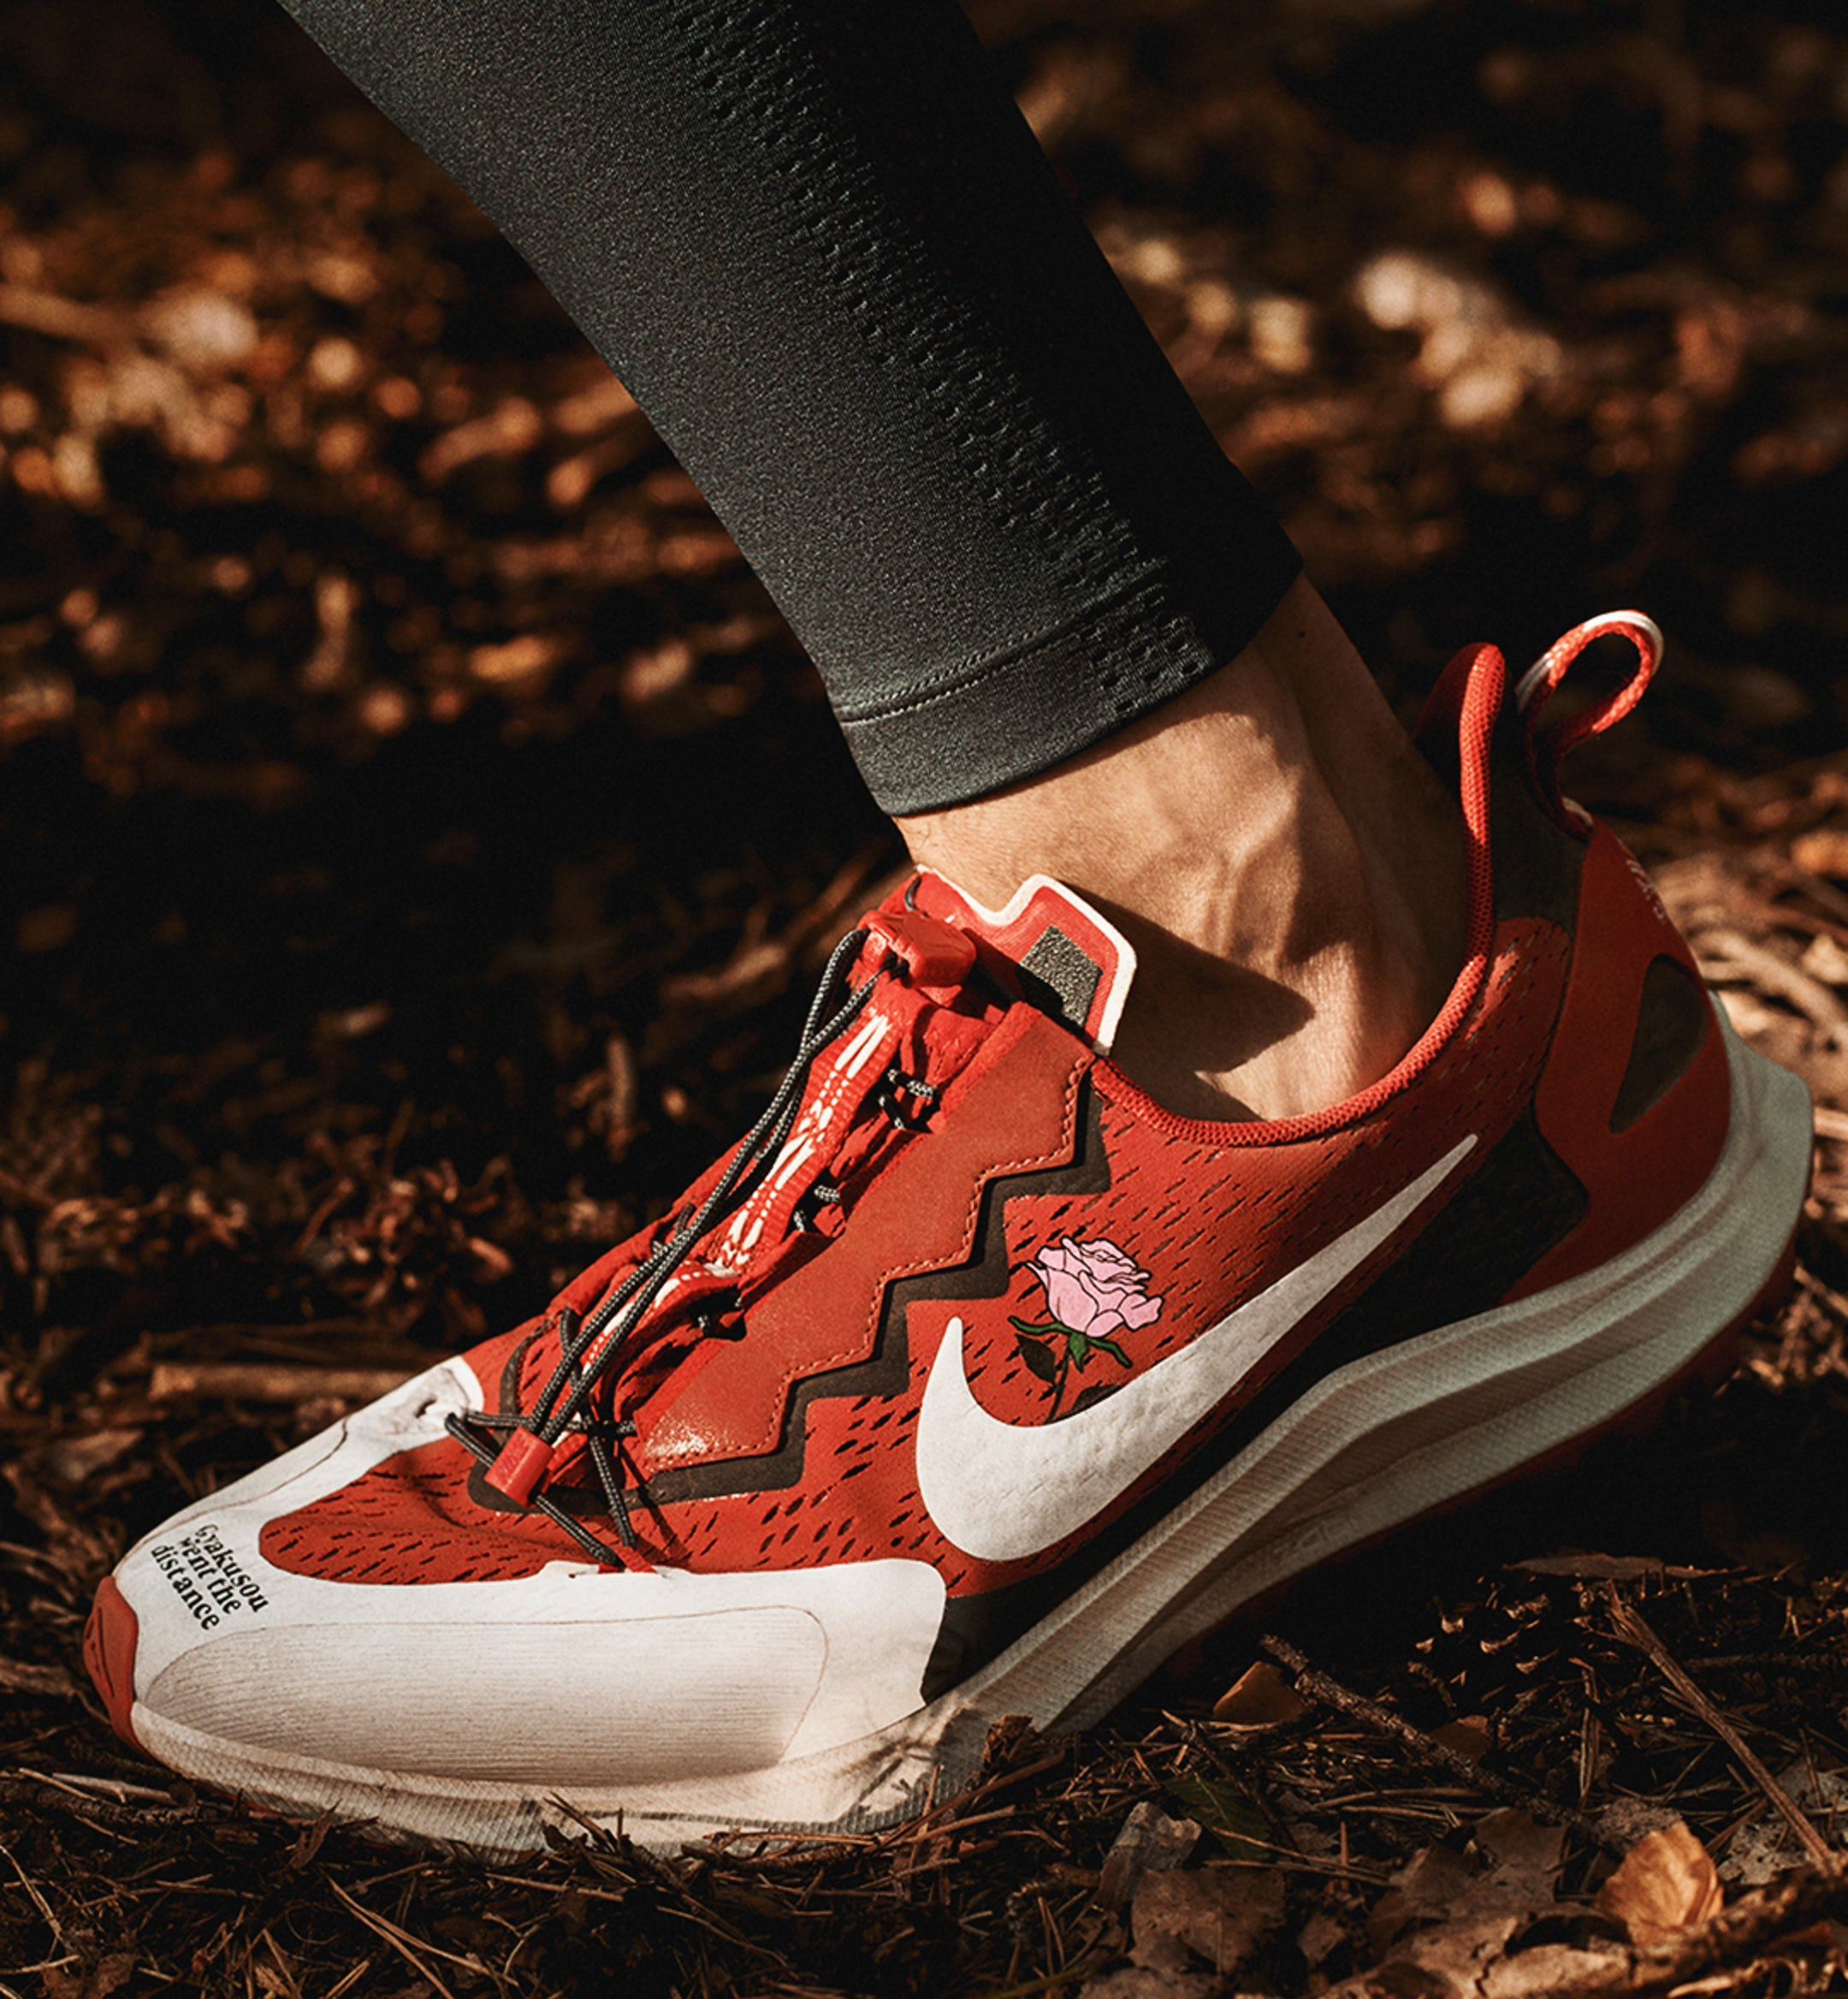 nike undercover collection release details mobbile